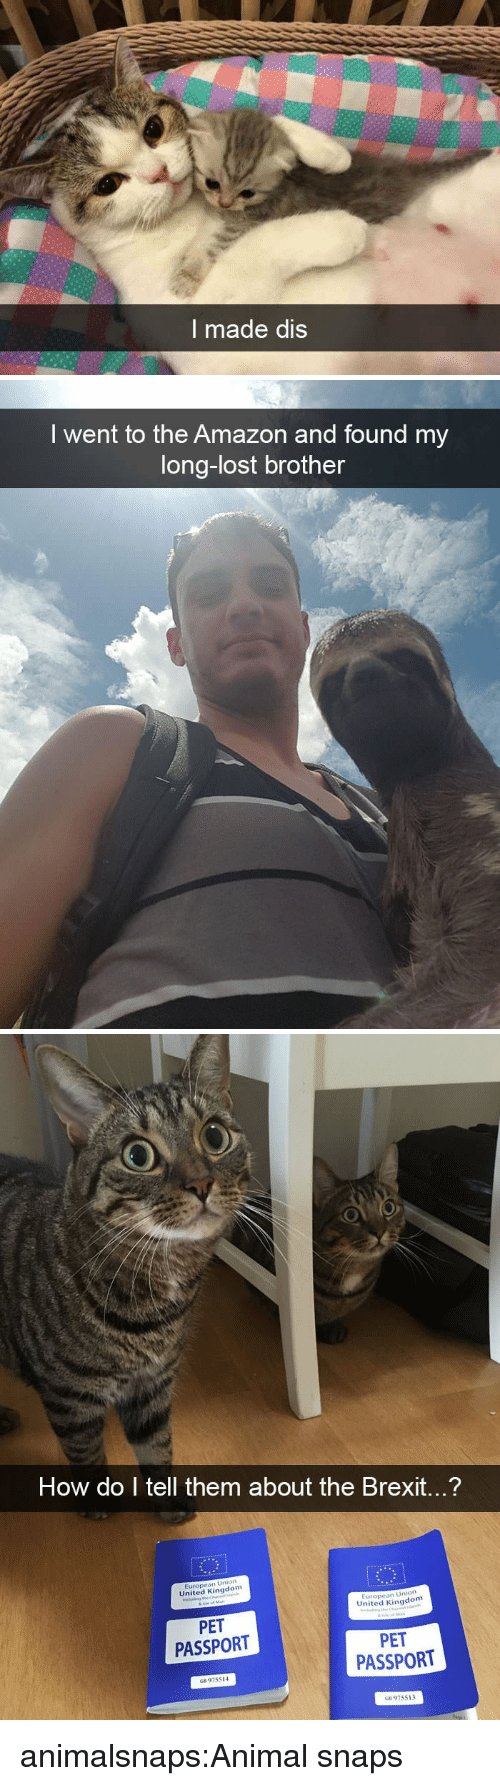 Amazon, Target, and Tumblr: I made dis   I went to the Amazon and found my  long-lost brother   How do I tell them about the Brexit...?  Union  United Kingdon  European  ion  European Un  United Kingdom  PET  PASSPORT  PET  PASSPORT  G8 975514  G 975513 animalsnaps:Animal snaps